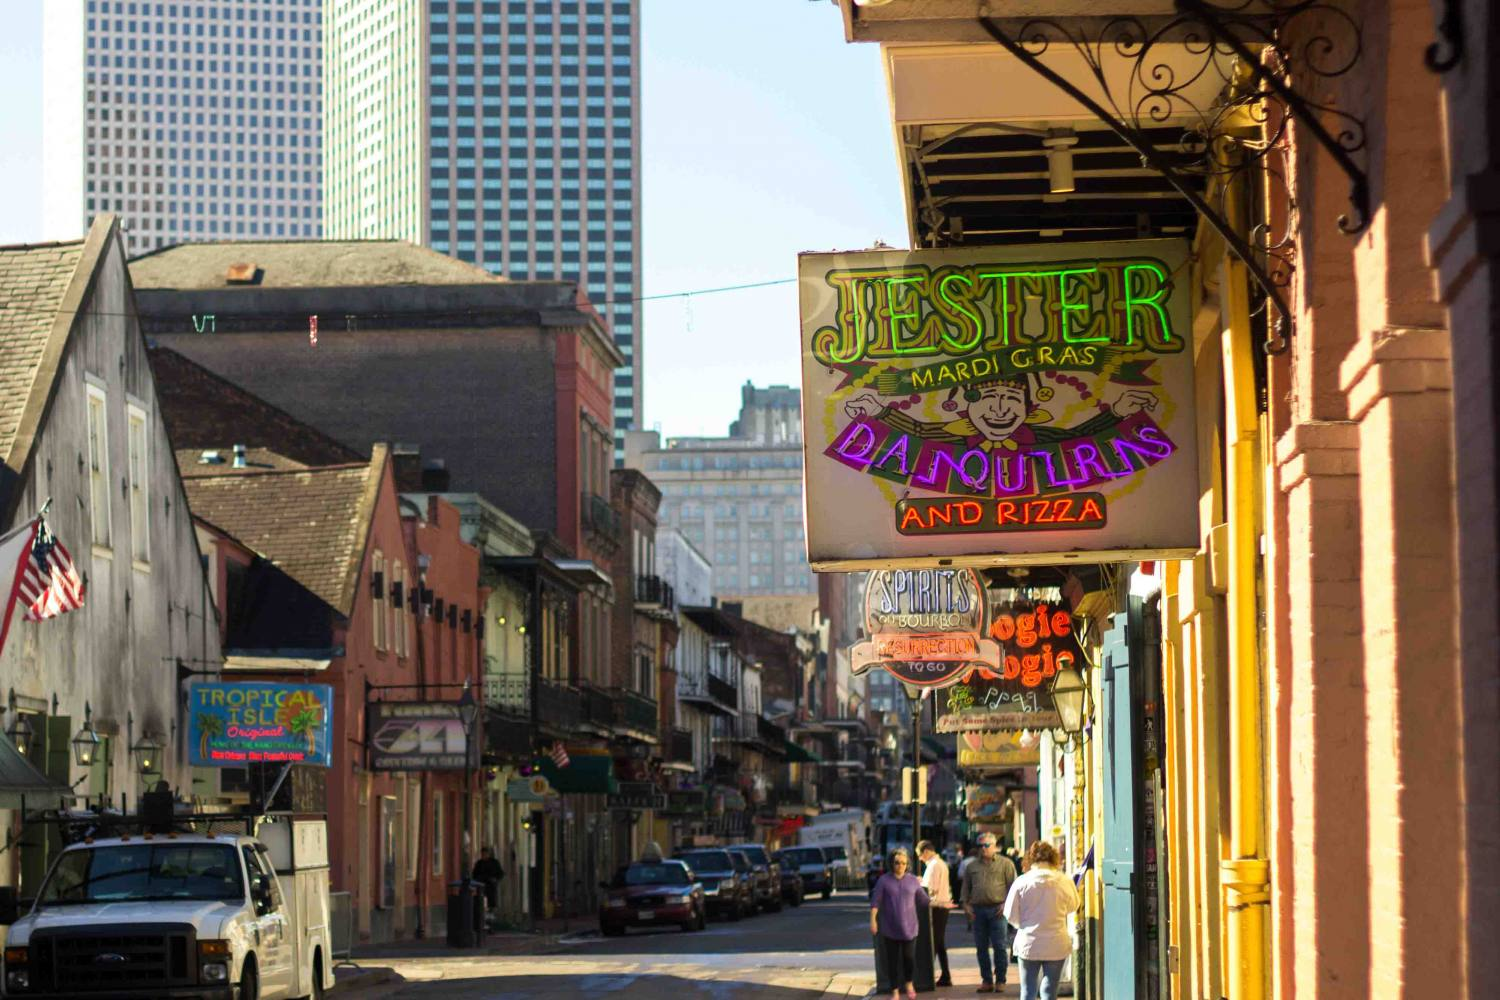 New Orleans, Louisiana, is largely known for Mardi Gras parades and year-round parties on Bourbon Street and elsewhere in the French Quarter - but it has so much more to offer. It's also a place visitors can learn about history, ecology, climate change, slavery, voodoo, and more. NOLA makes a great stop on a historical road trip through the Deep South with a focus on human rights and social justice issues.